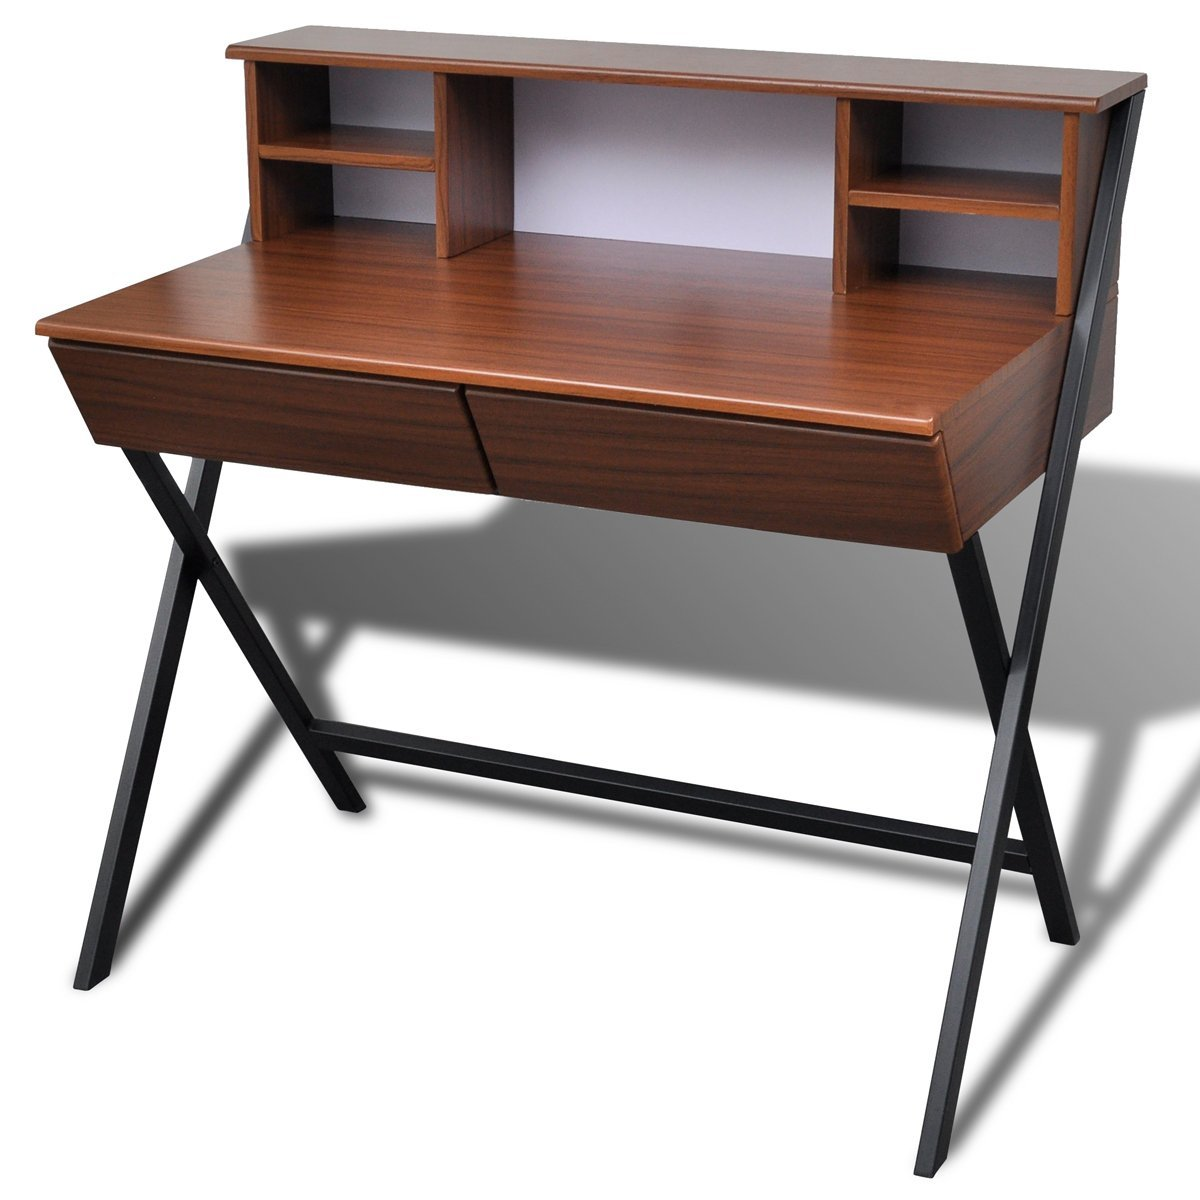 HxWxD: 76.5 x 106.5 x 55.5 cm Natural Brown Relaxdays Wooden Computer Table Keyboard Drawer Solid Office Desk